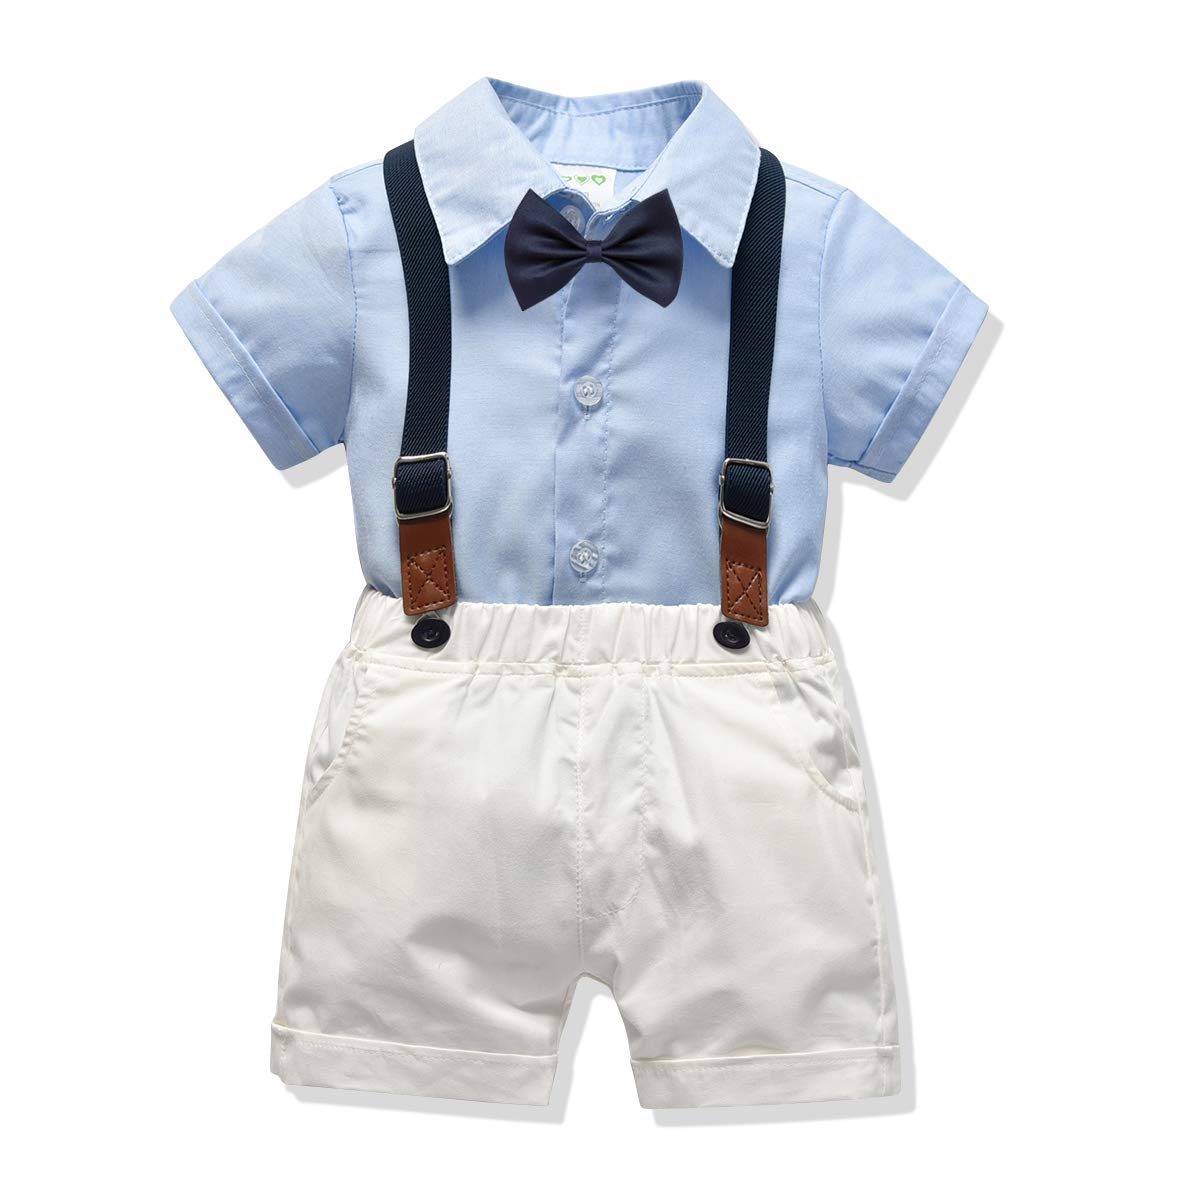 Carlatar Little Boys Gentleman Outfits Suits,Baby Boys Short Sleeve Shirt Set,Short Shirt+Suspender Short Pants+Bow Tie 4Pcs